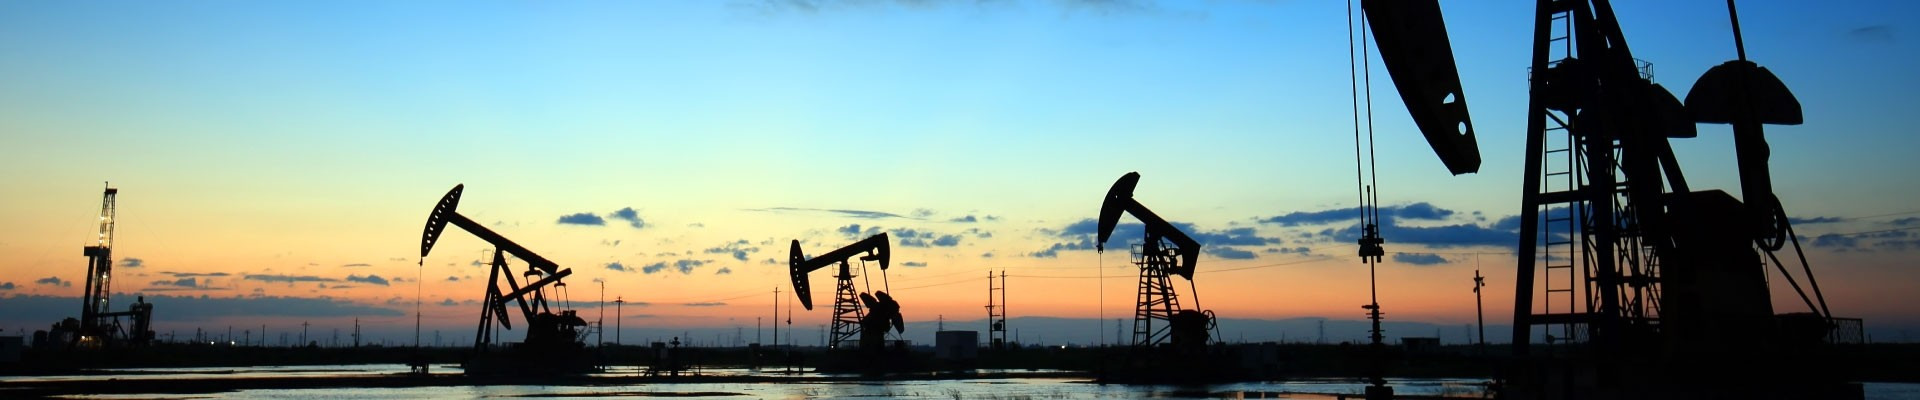 Benefits of Digital Transformation for Oil and Gas Companies